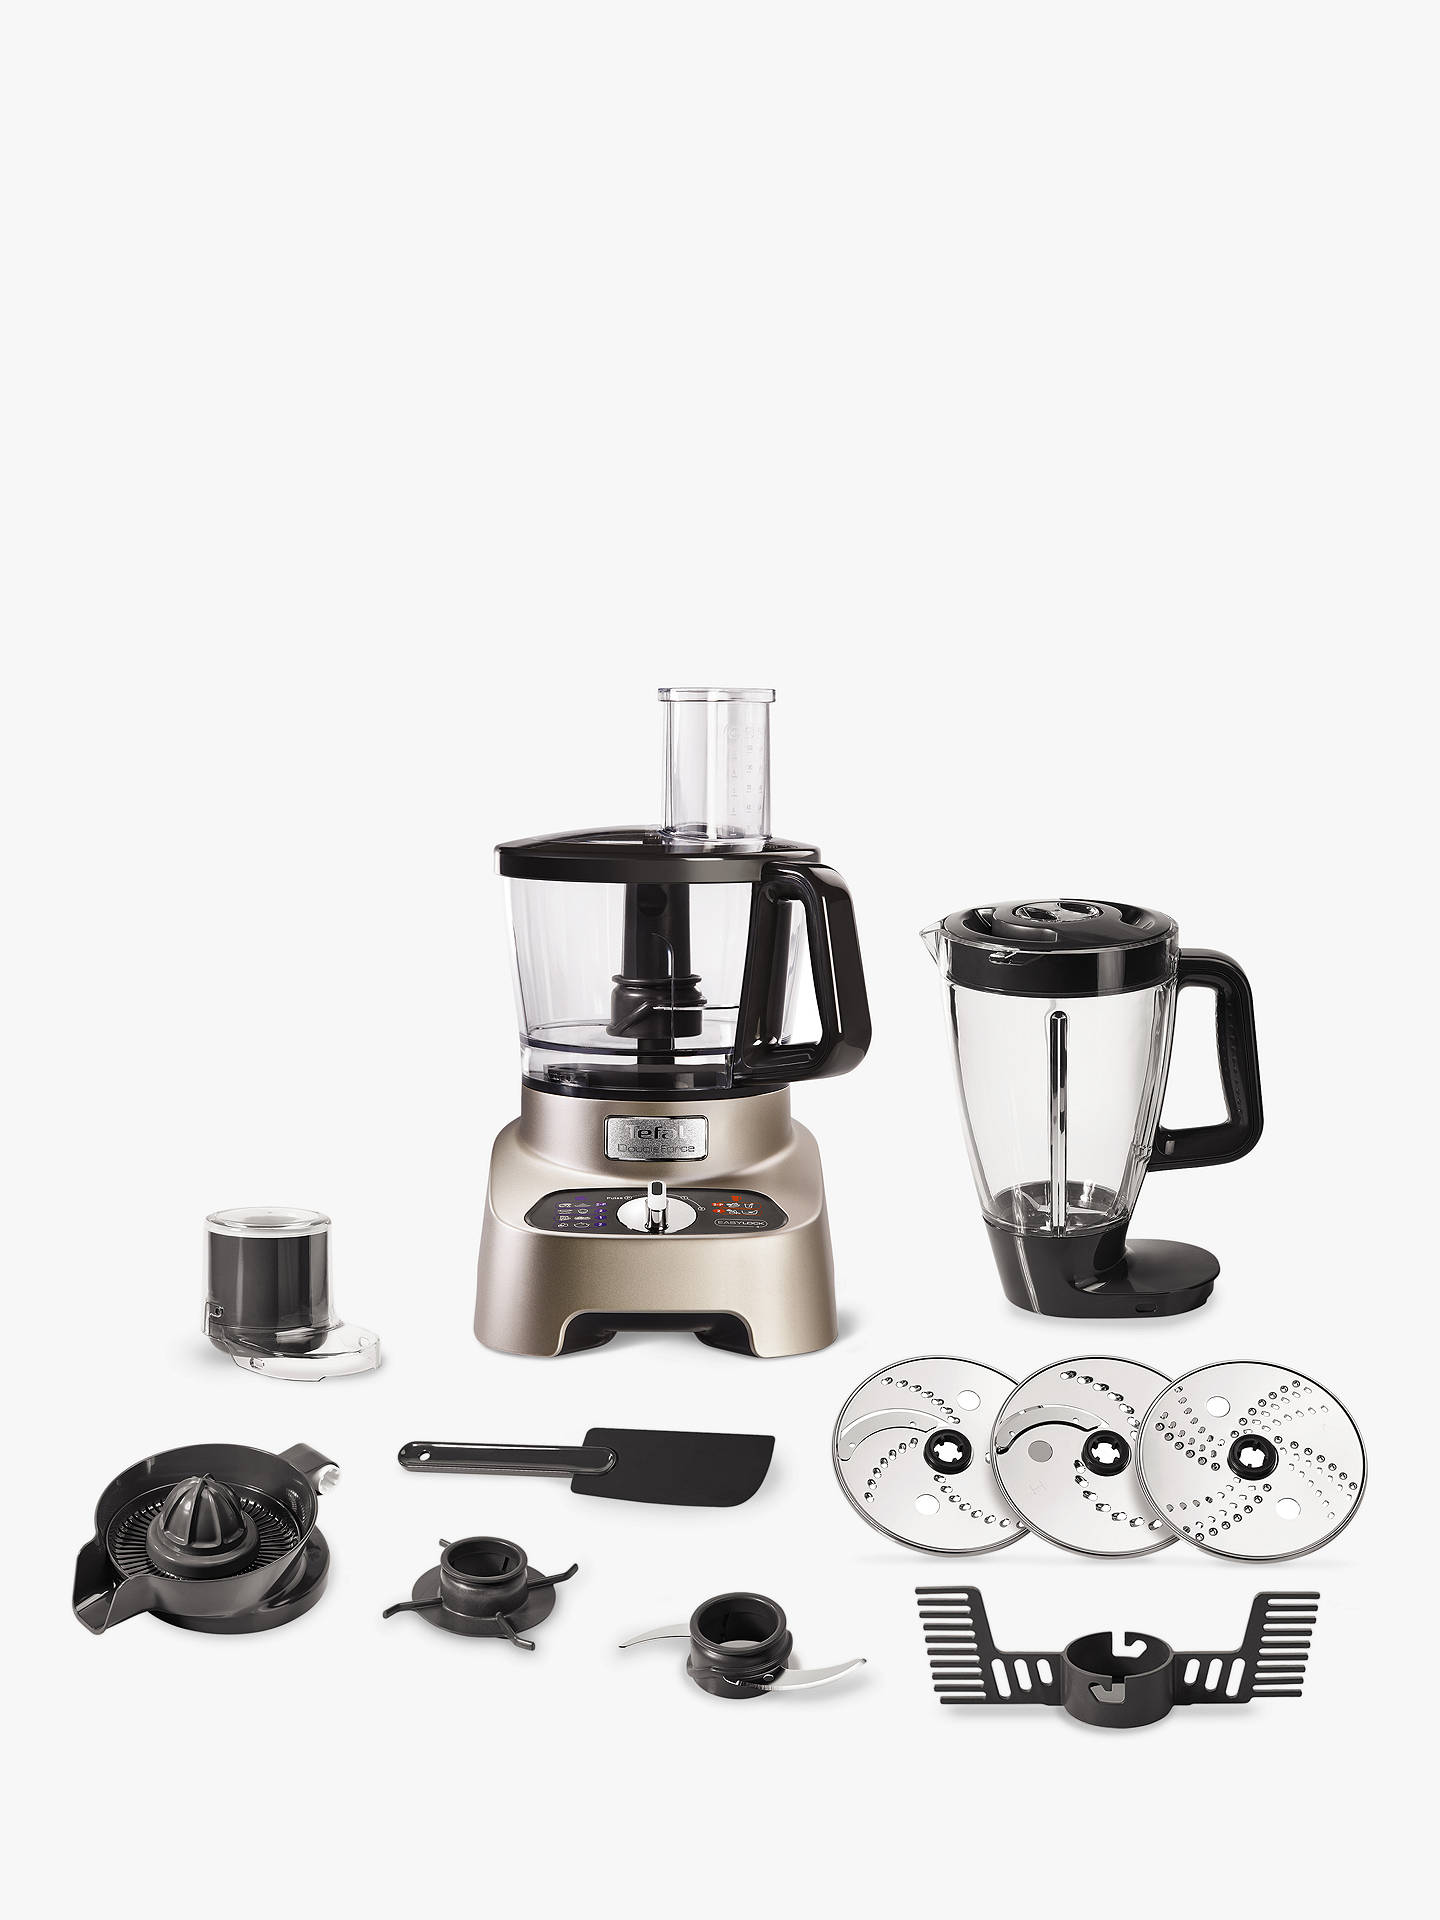 BuyTefal DO824H40 Double Force Pro Food Processor Online at johnlewis.com